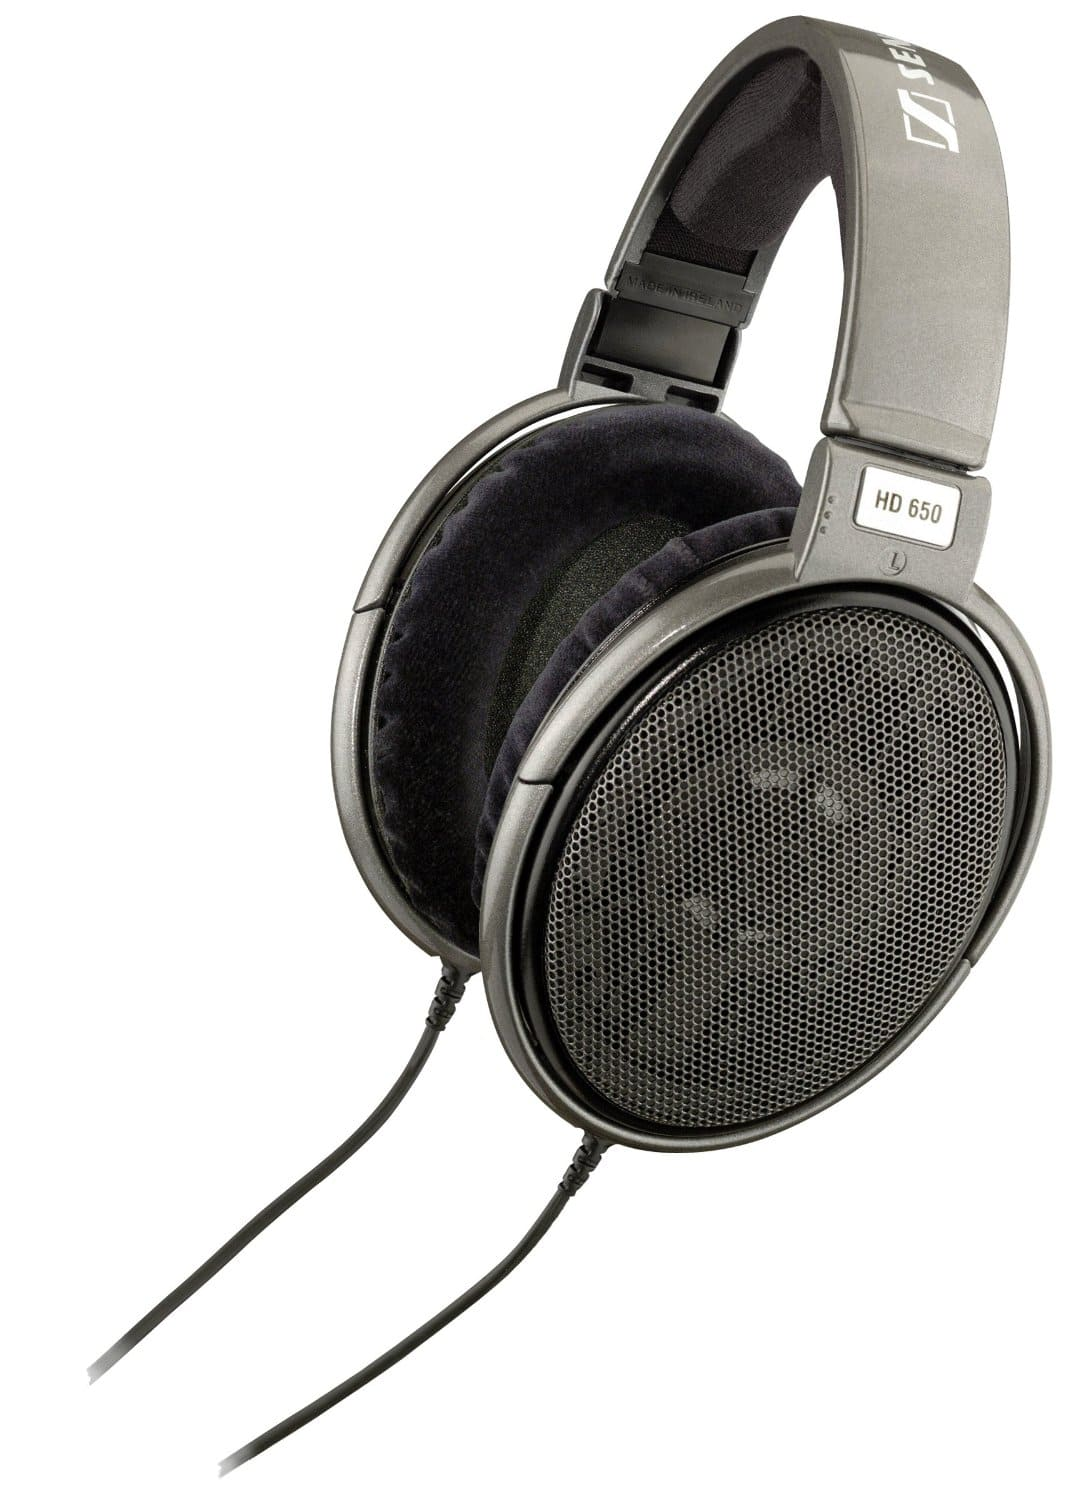 Sennheiser HD 650 Open Back Professional Headphone $292.39 Shipped @ Amazon UK